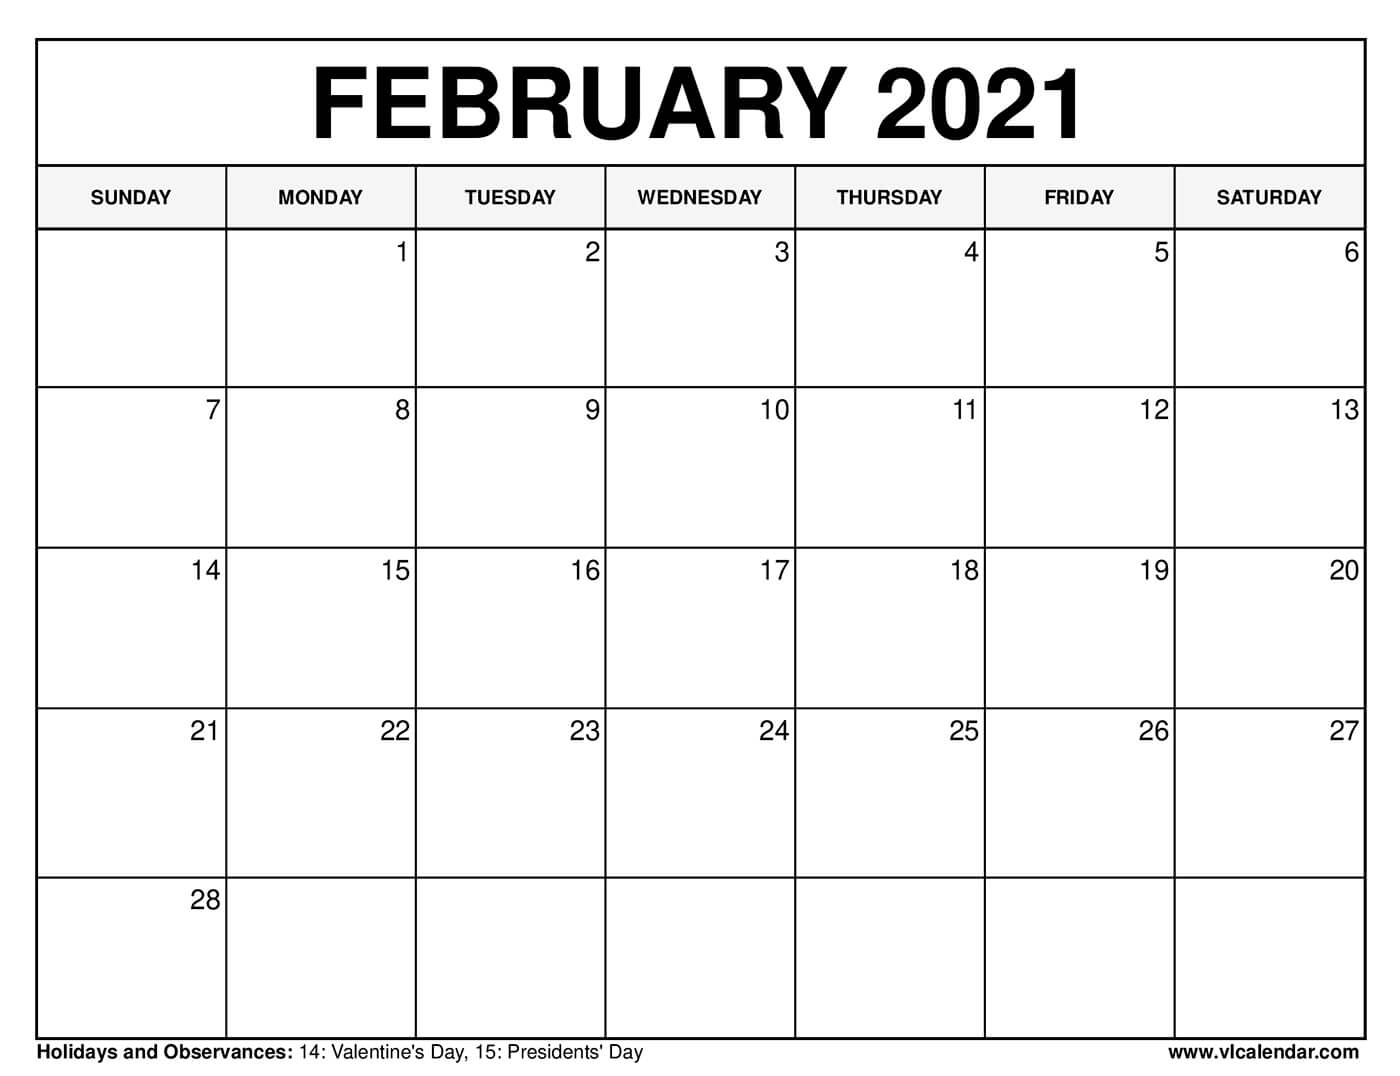 Free Great Calendar for Printable Yearly Full Moon Calendar For 2021